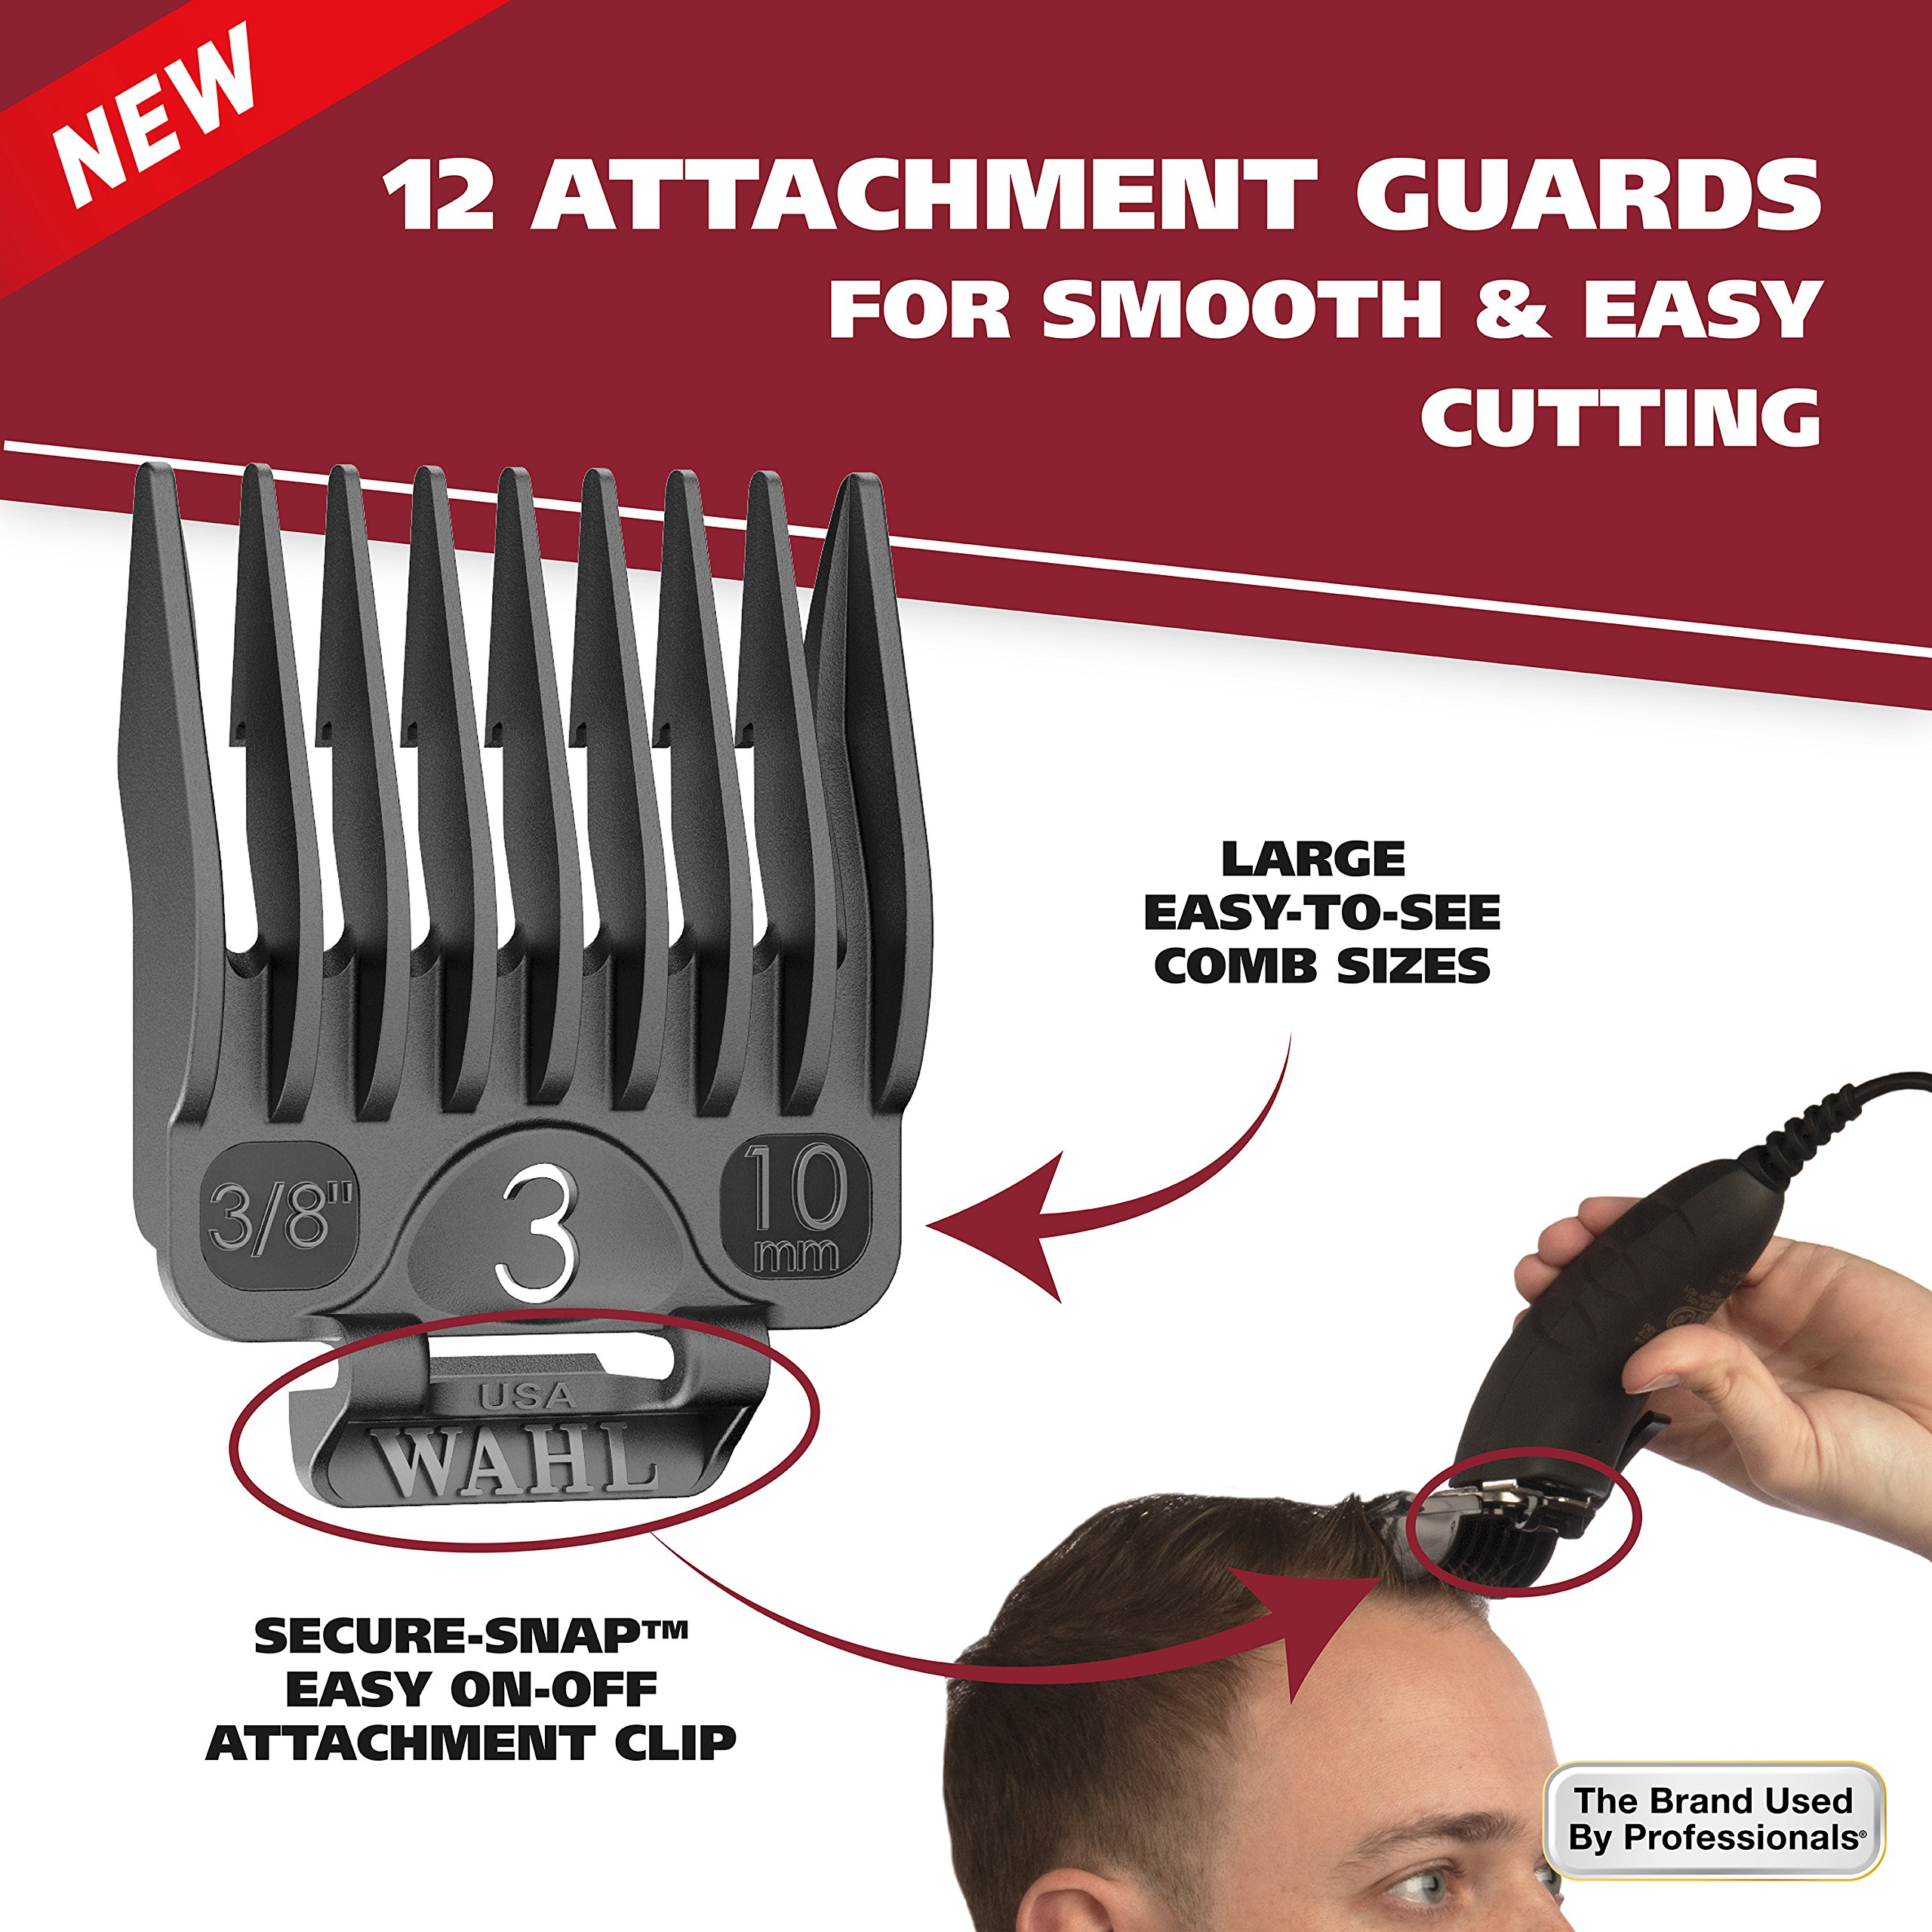 Wahl Clipper Self-Cut Haircutting Kit 79467 Compact Trimming and Personal Grooming Kit by WAHL (Image #7)